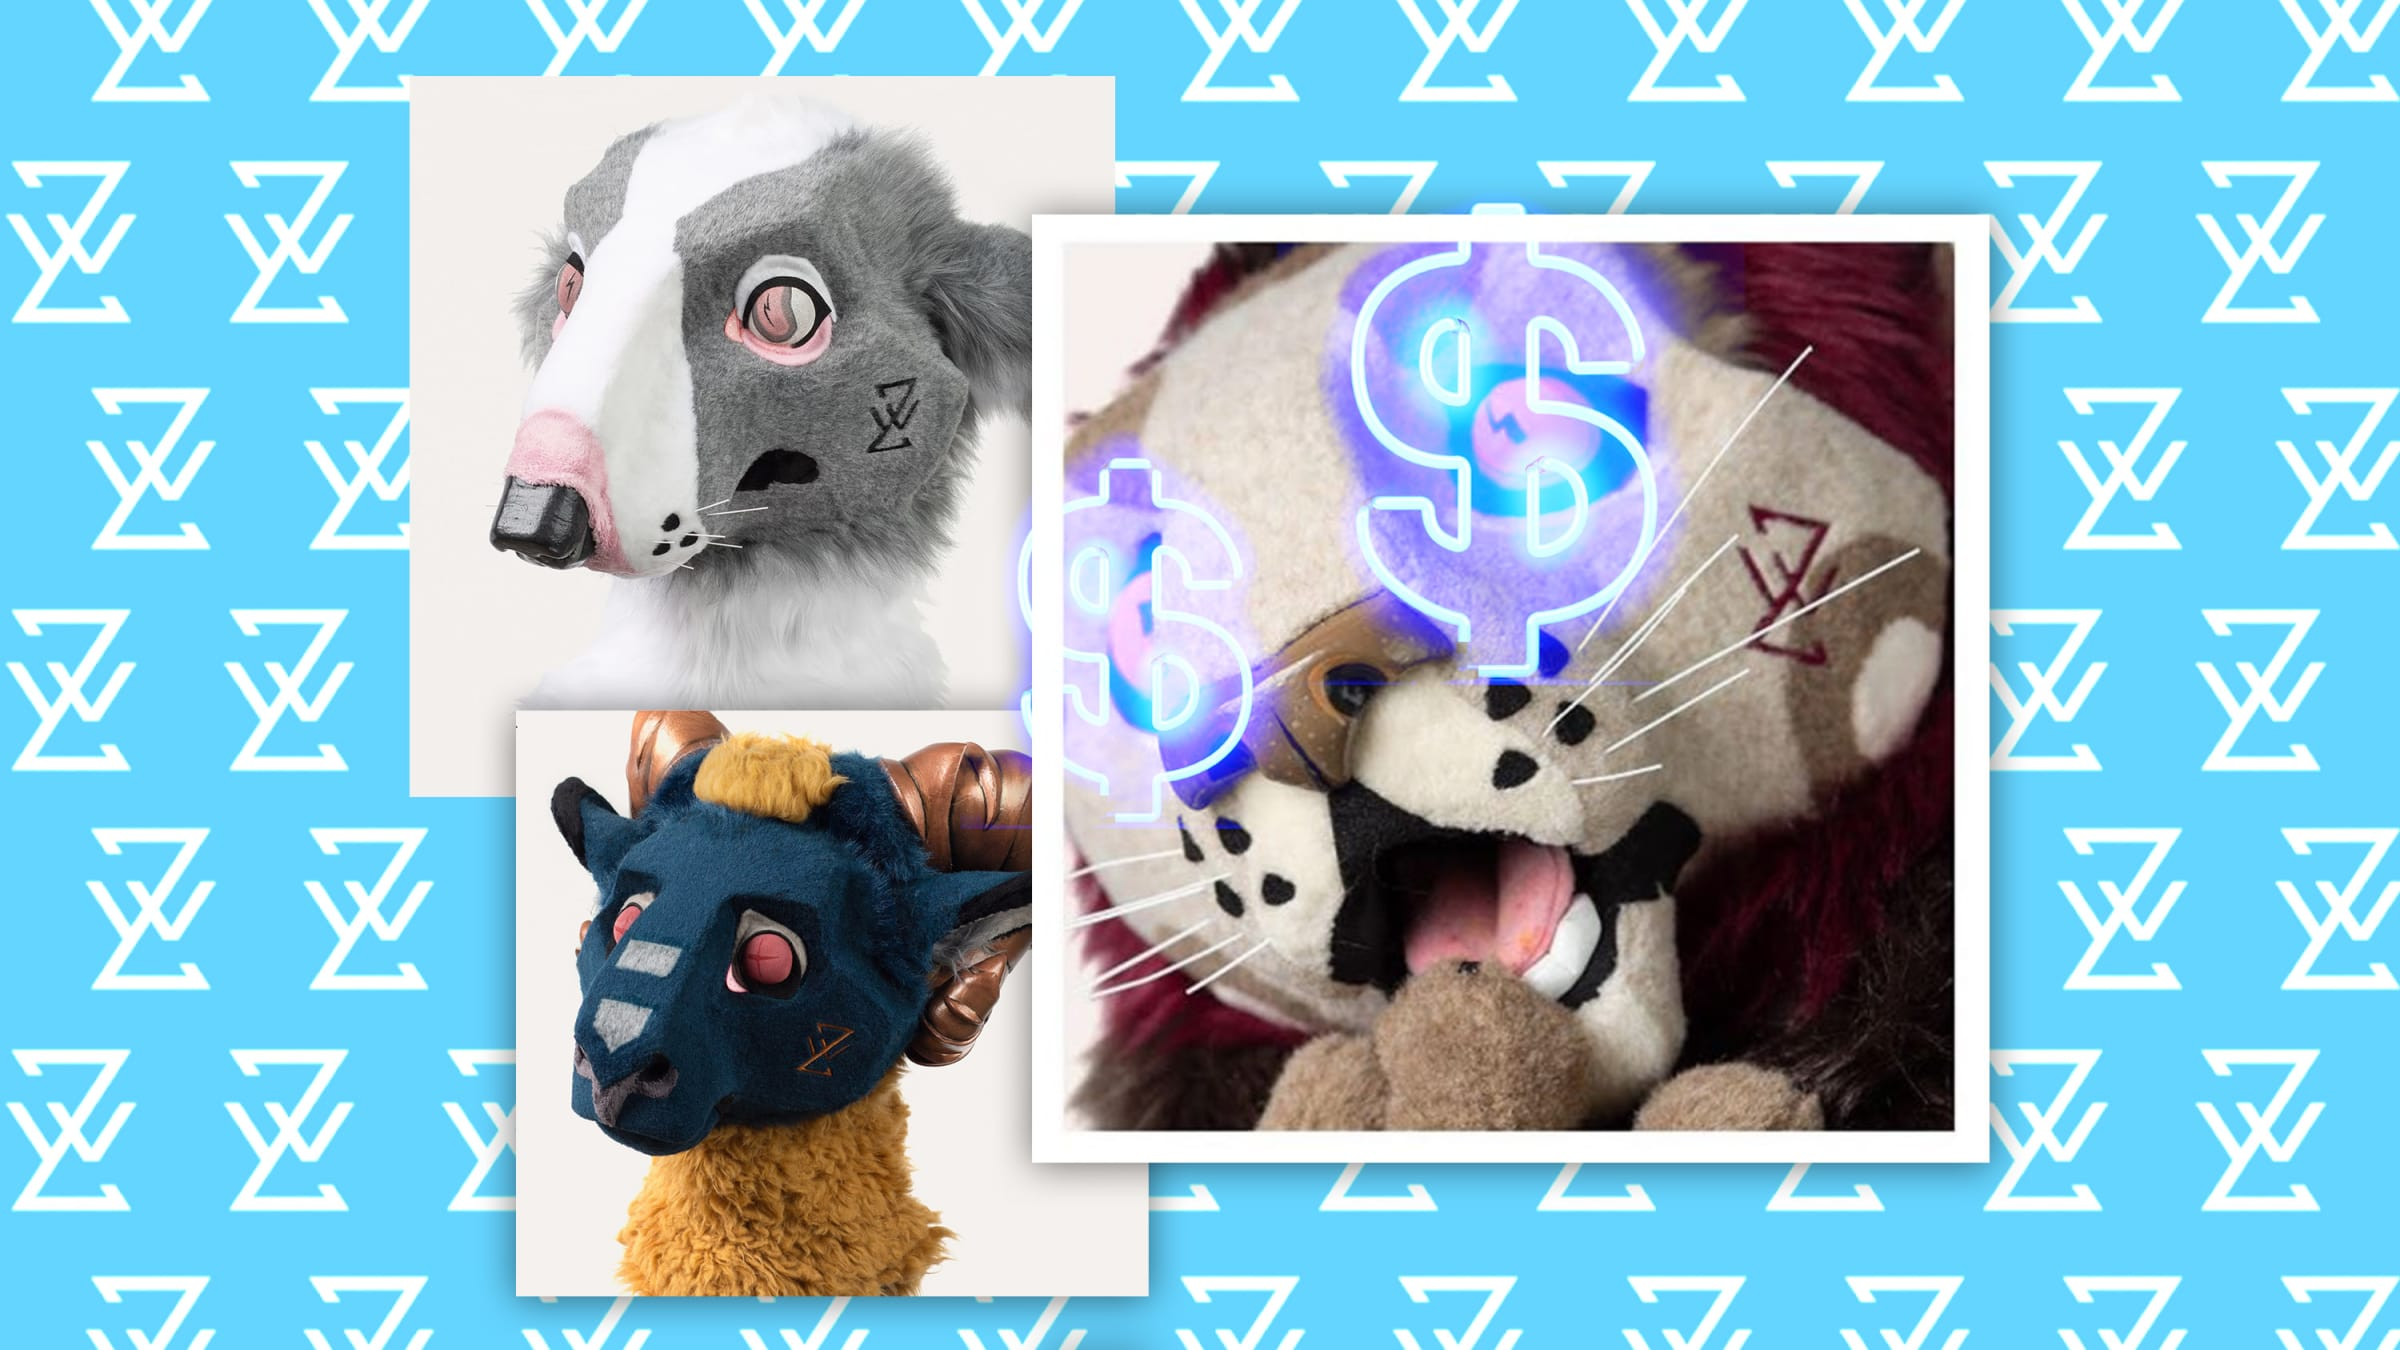 Furries Furious at Luxury Brand Zweitesich Trying to Sell